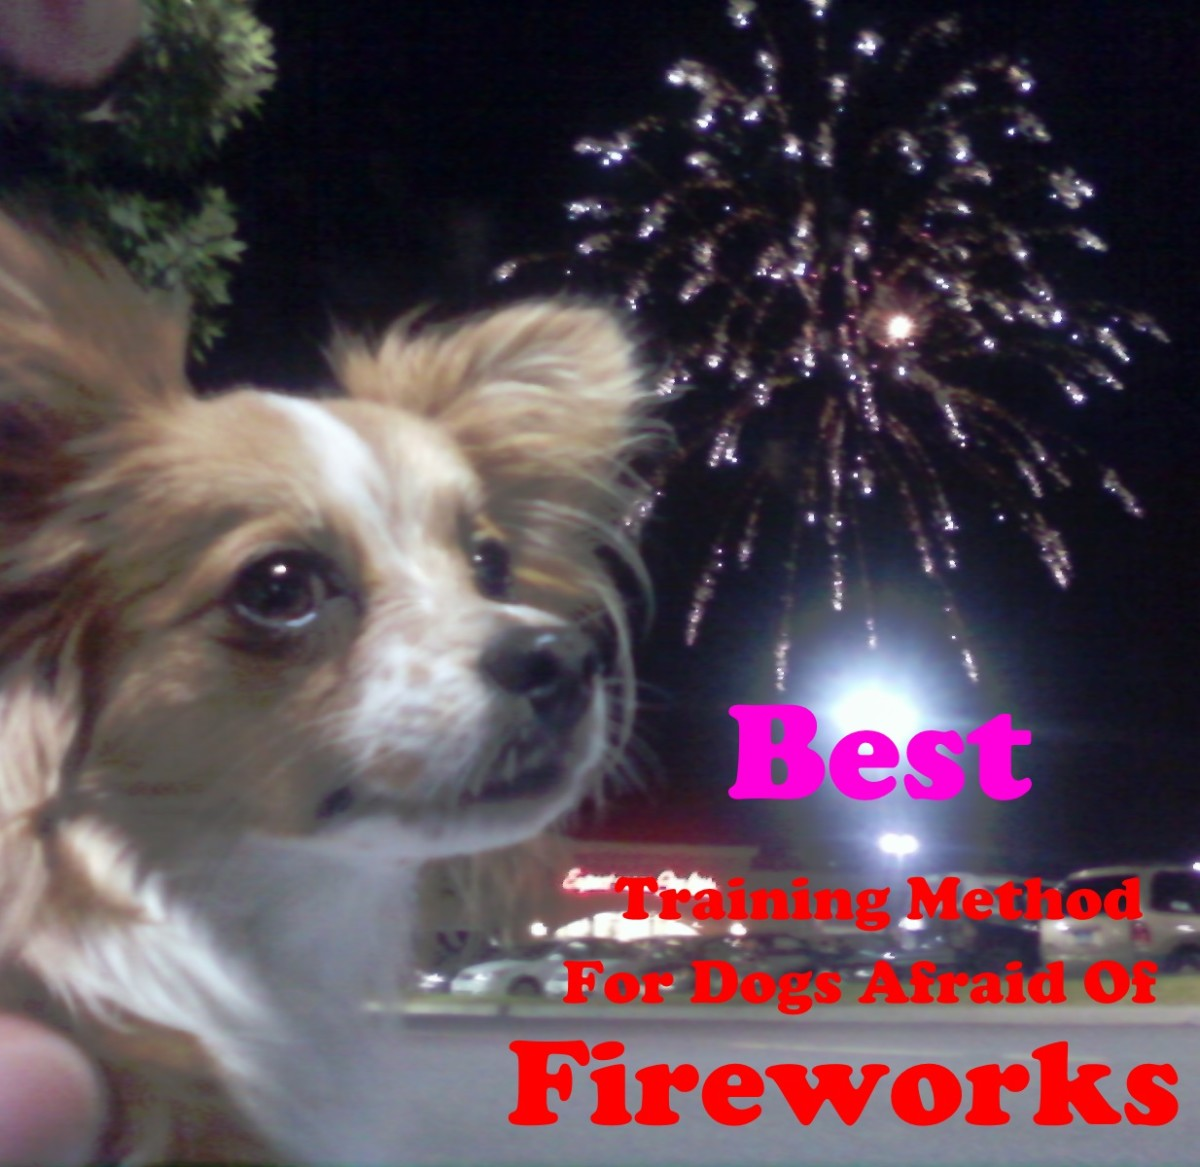 Best Way to Train Your Dog Not to Be Afraid of Fireworks